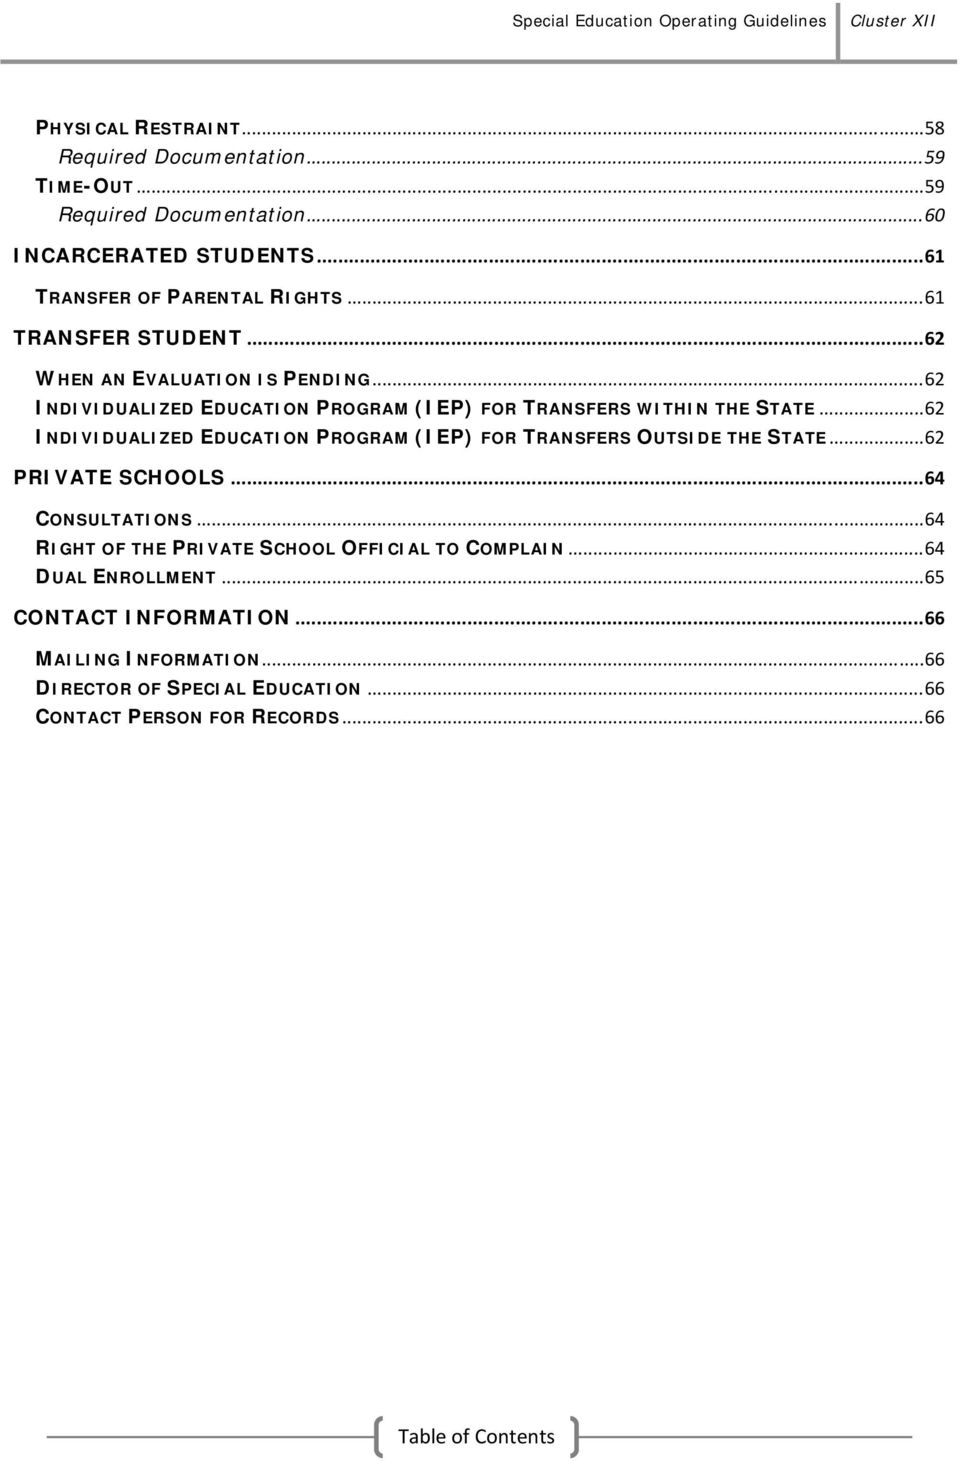 .. 62 INDIVIDUALIZED EDUCATION PROGRAM (IEP) FOR TRANSFERS OUTSIDE THE STATE... 62 PRIVATE SCHOOLS... 64 CONSULTATIONS.